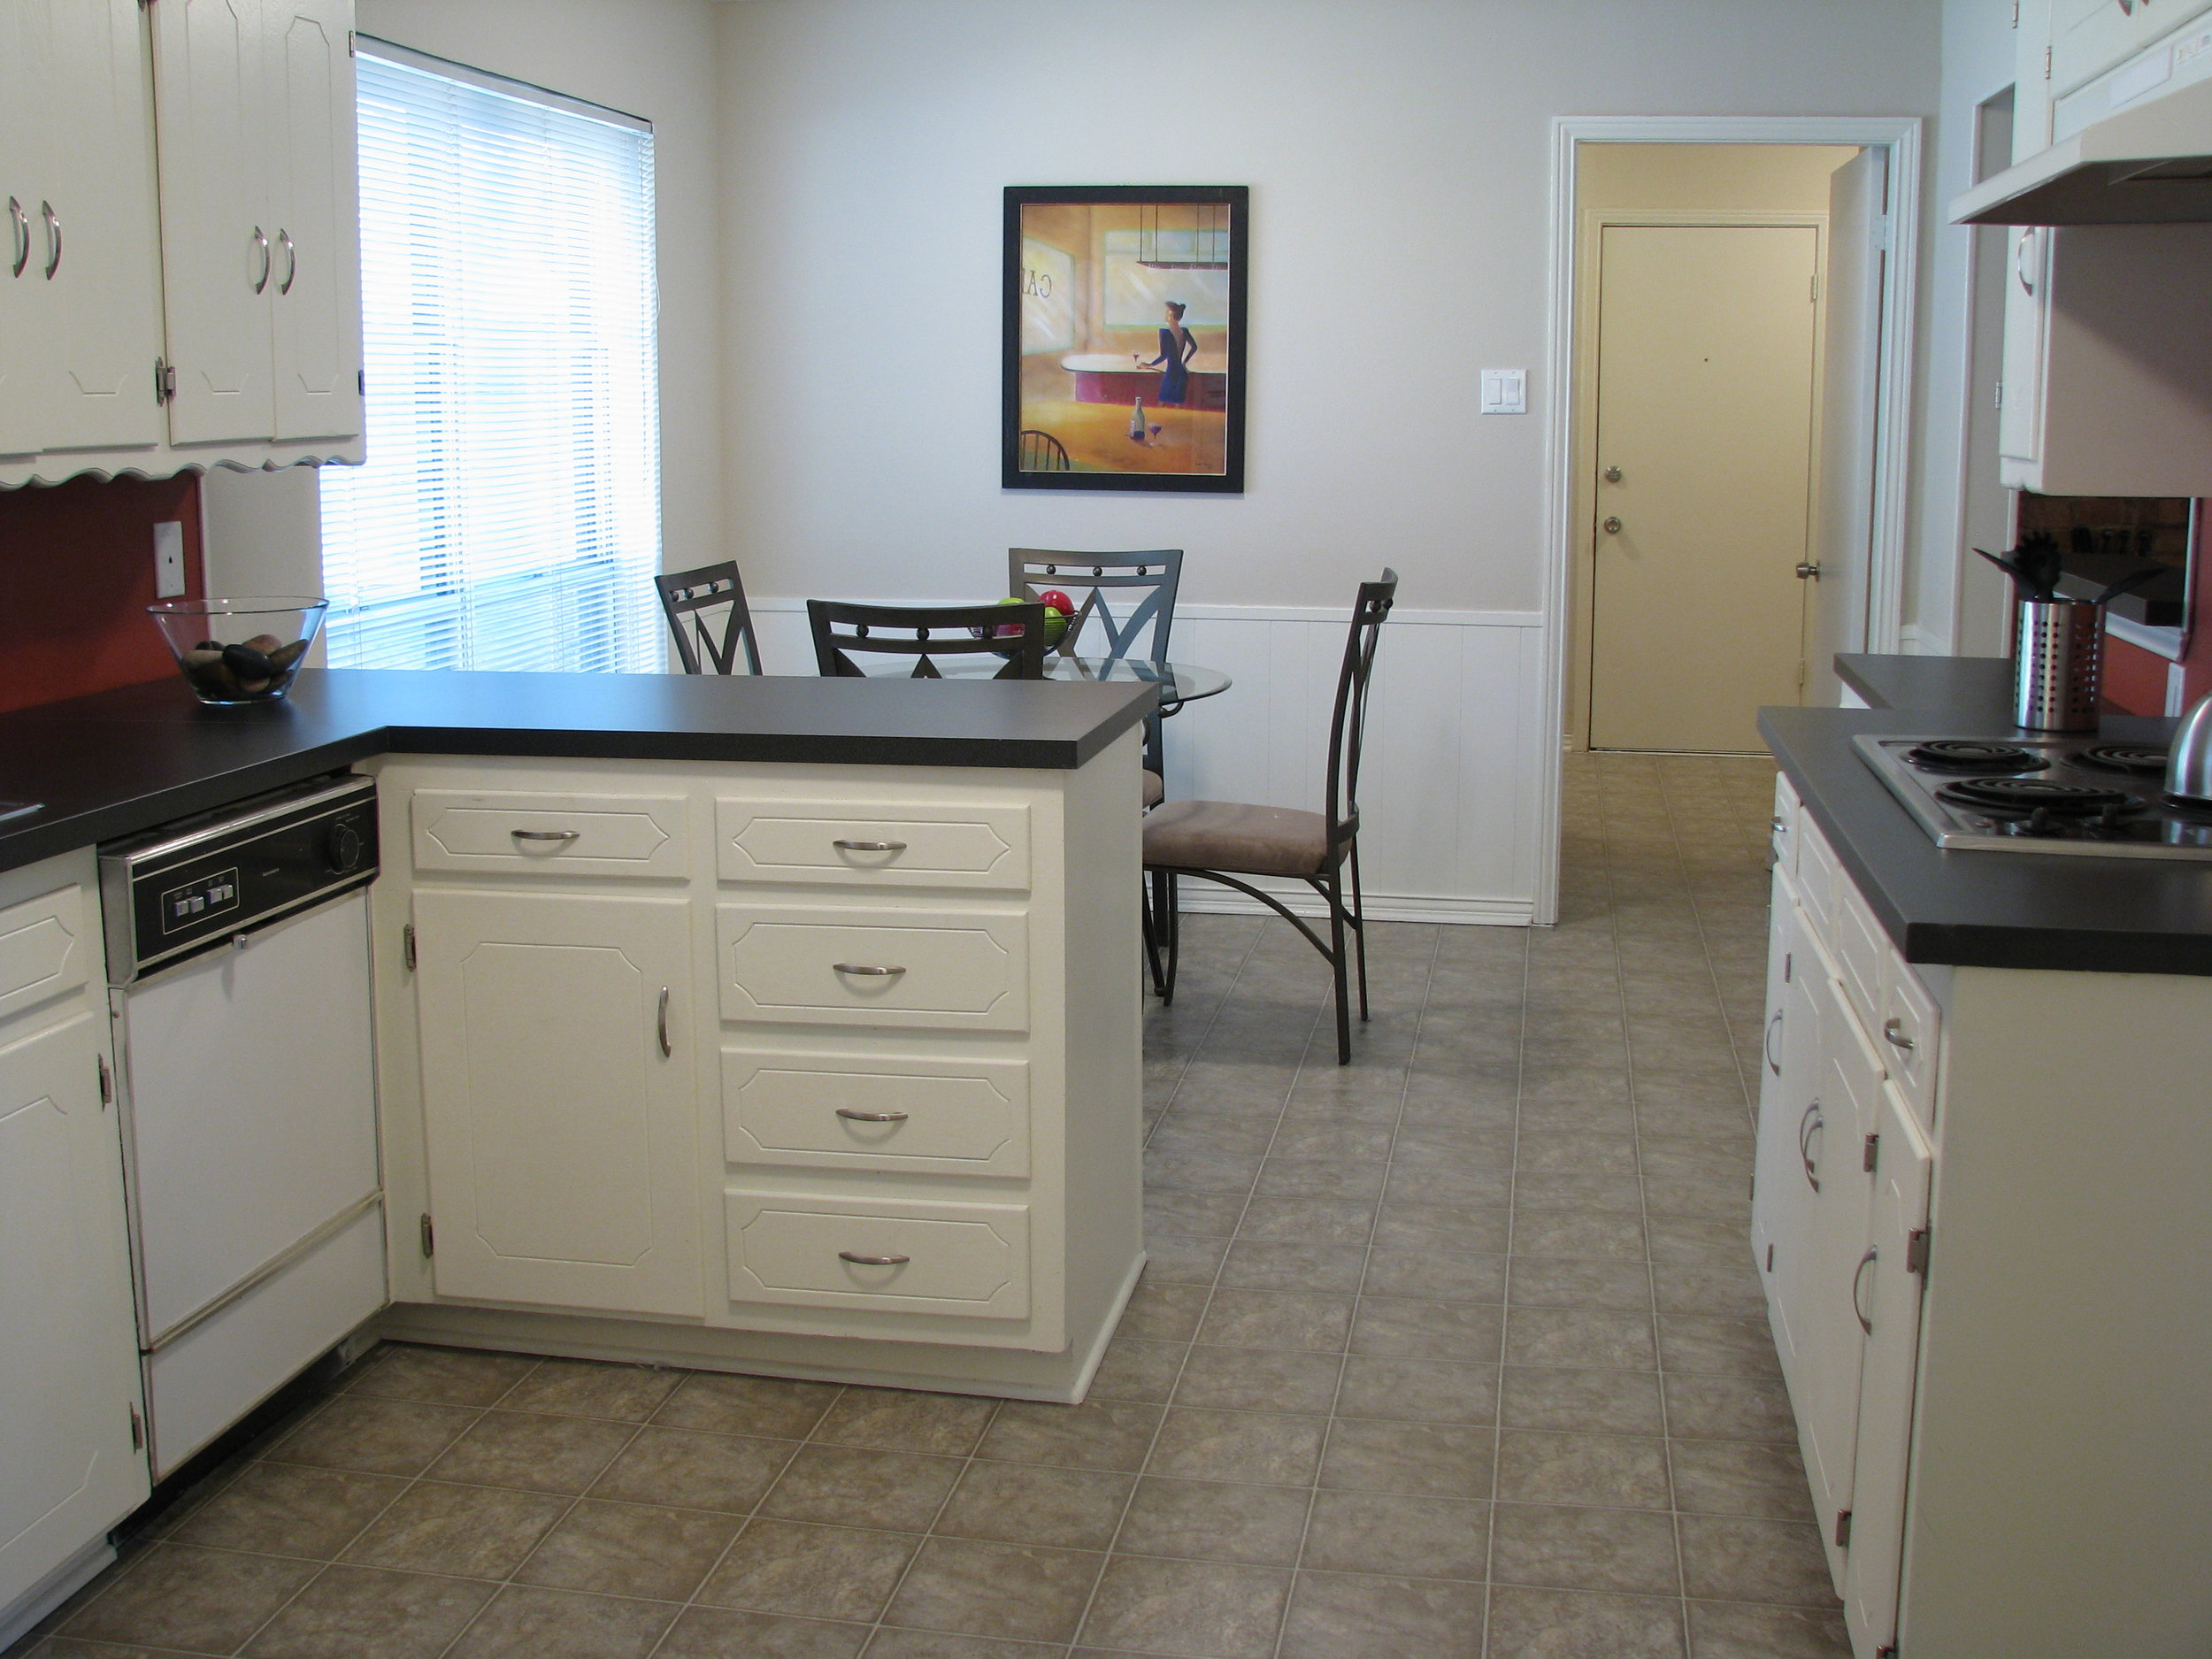 Kitchen after painting the cabinets, new linoleum, new laminant counter tops and staging